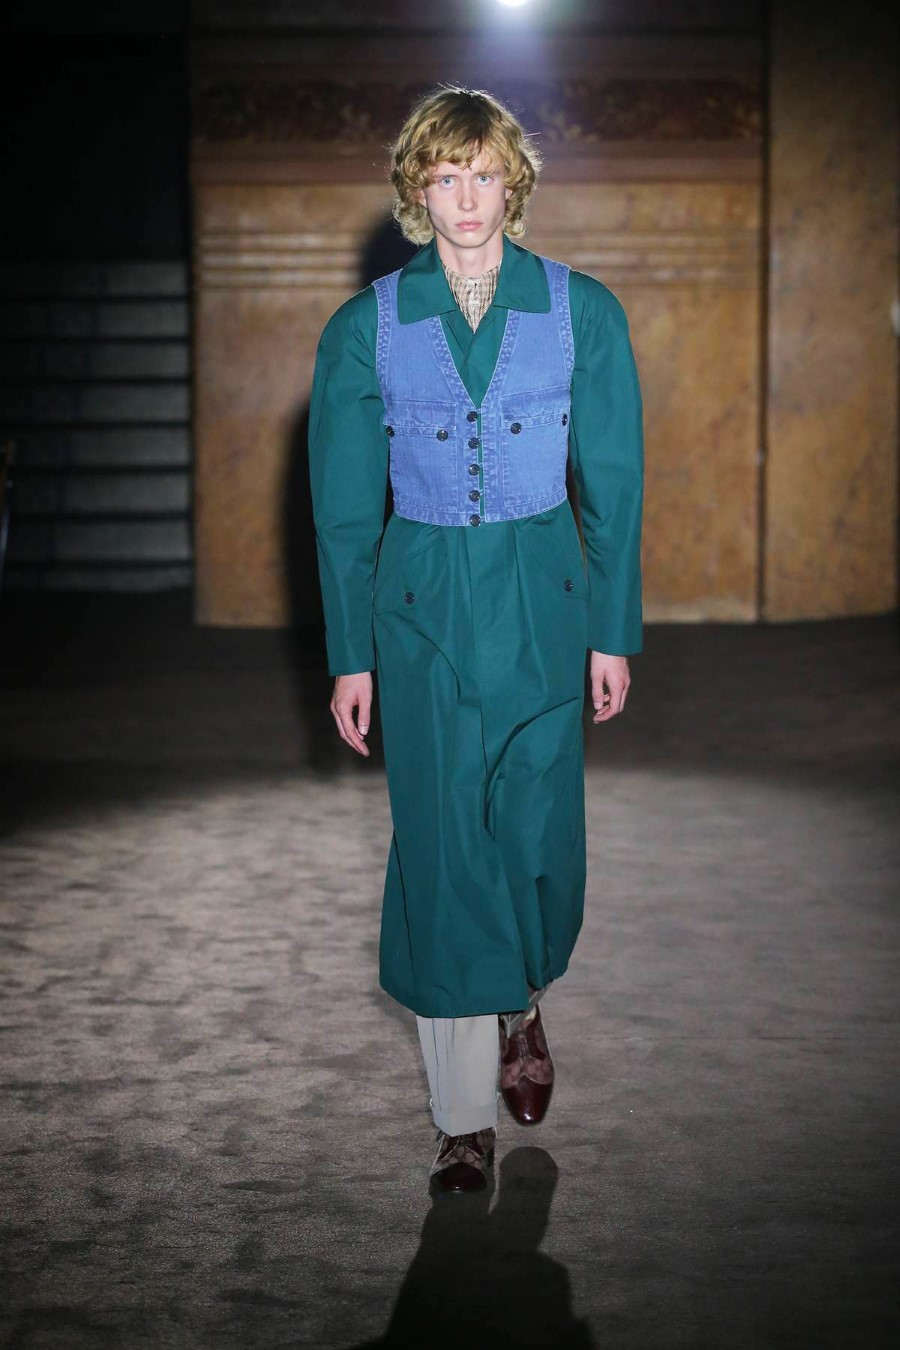 Gucci Printemps/Été 2019 - Paris Fashion Week